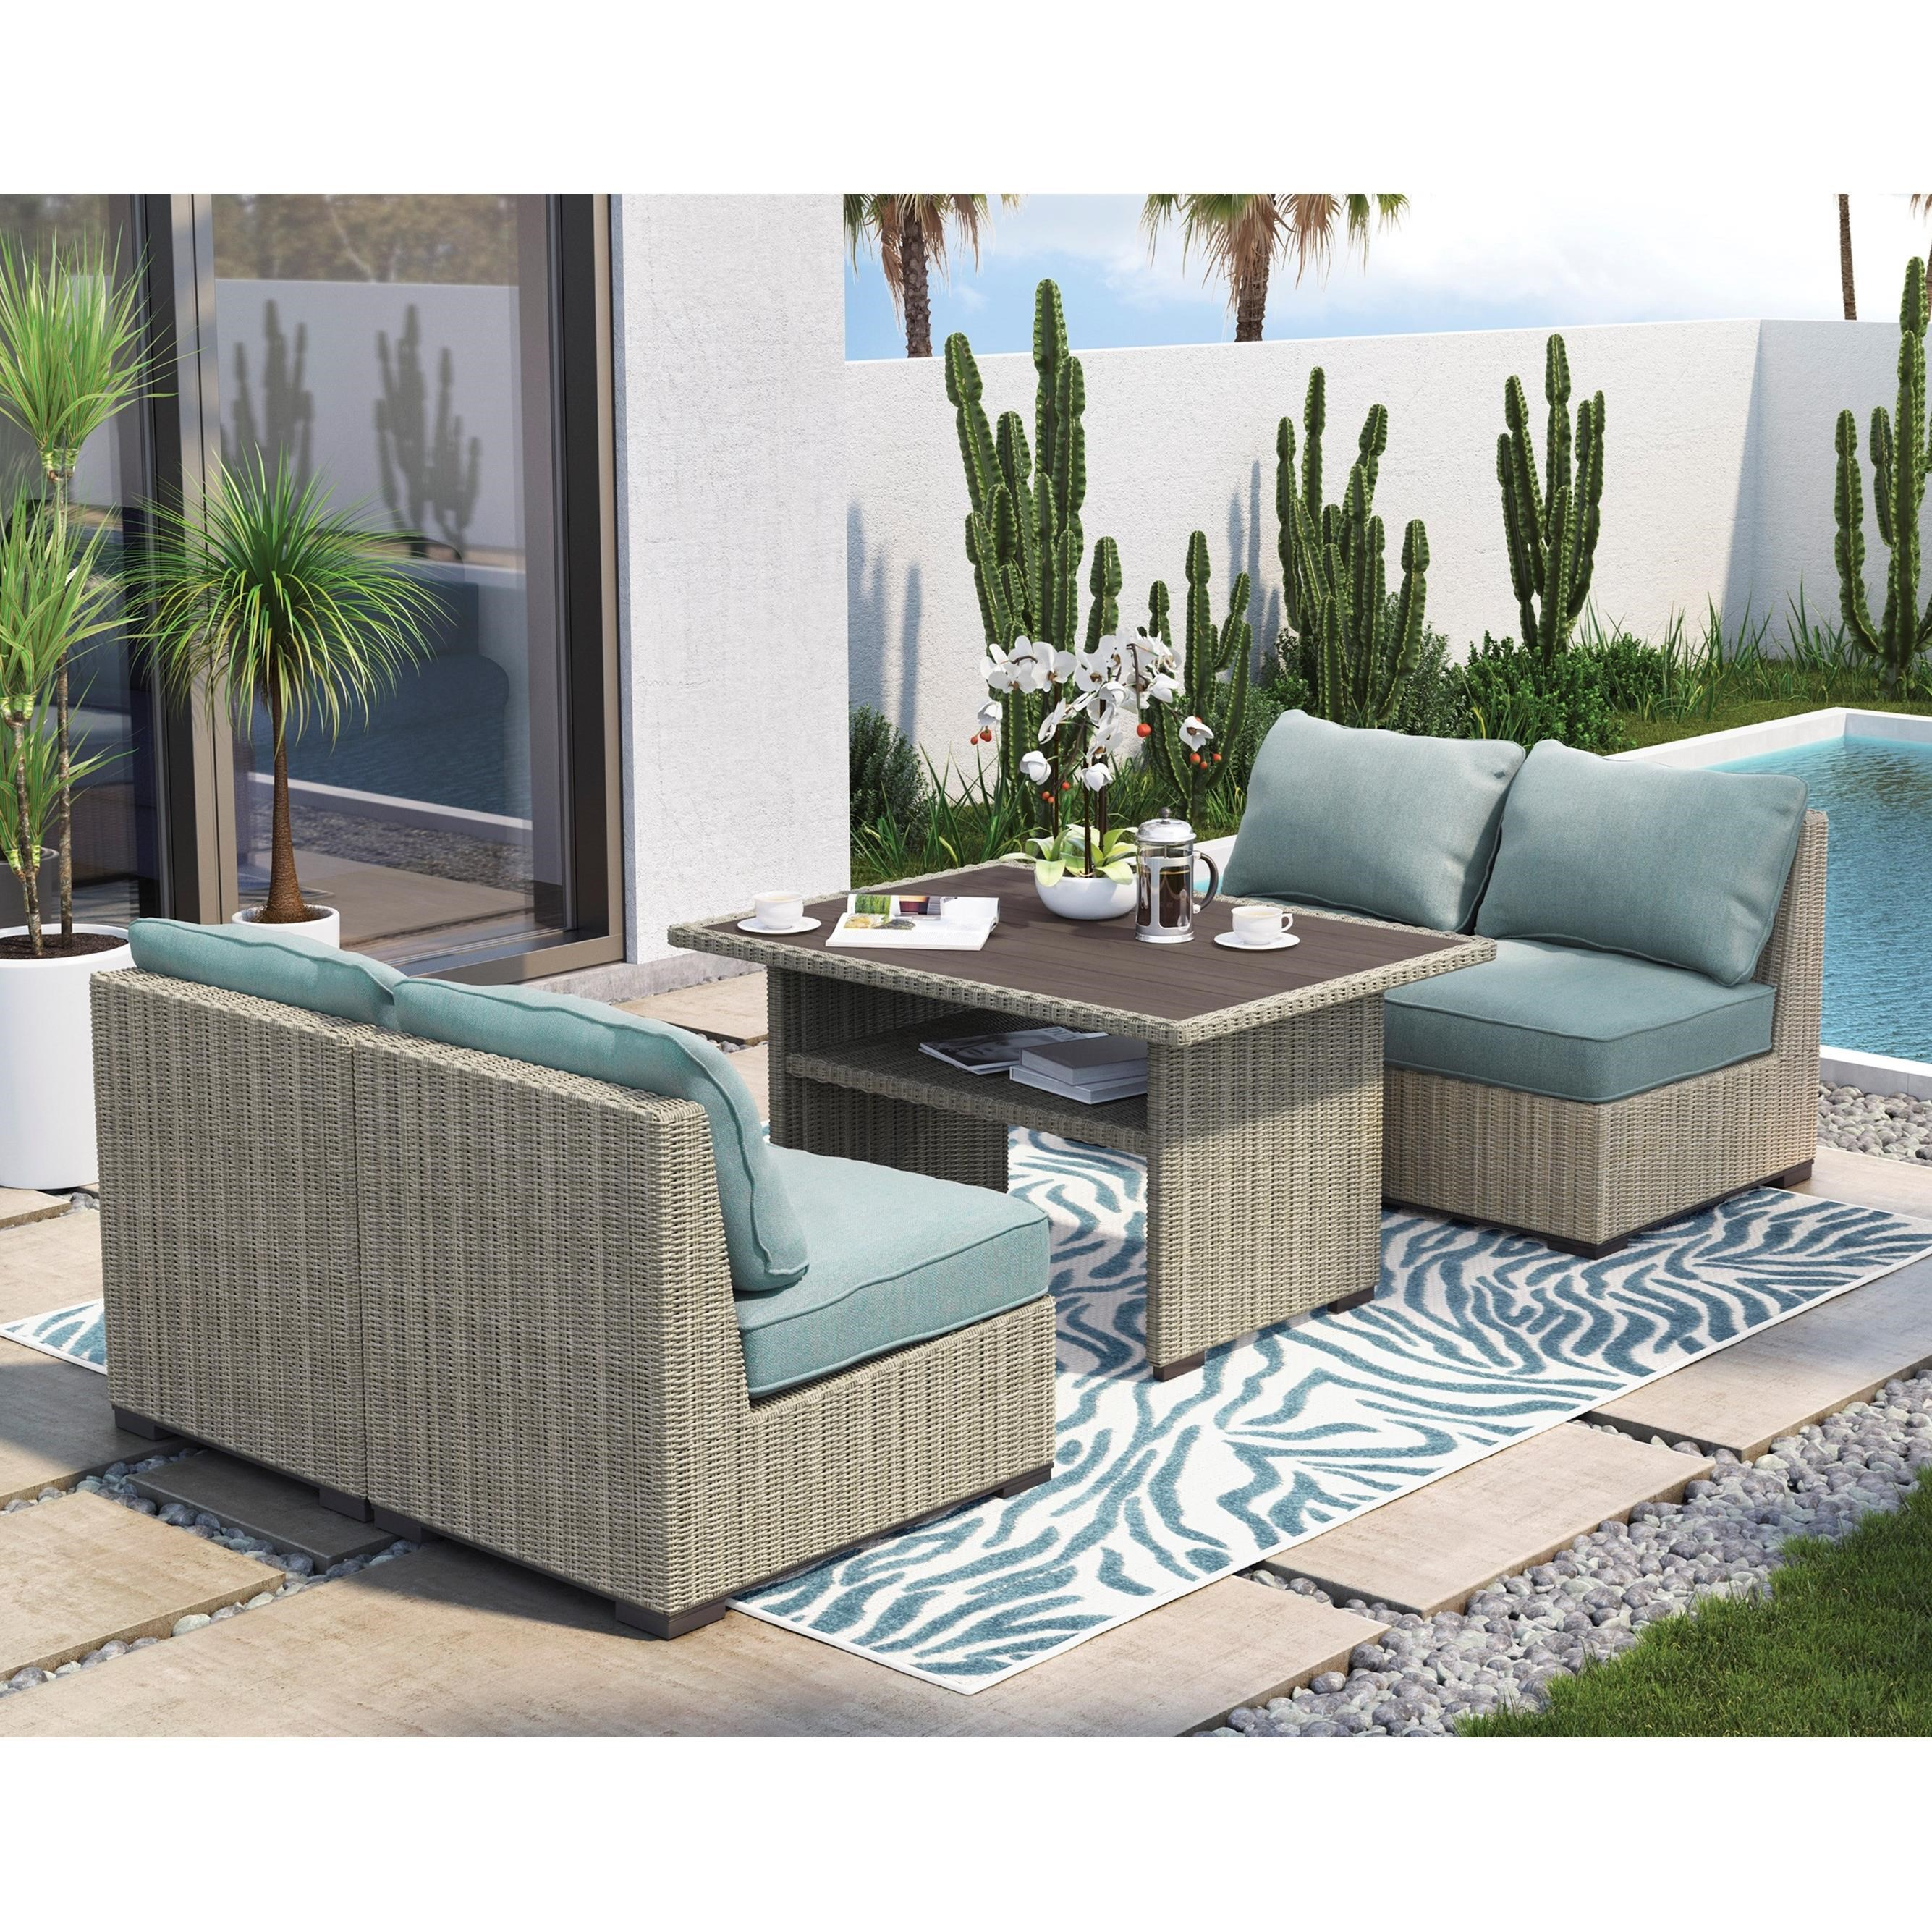 Superieur Signature Design By Ashley Silent Brook Outdoor Chat Set   Item Number:  P443 625